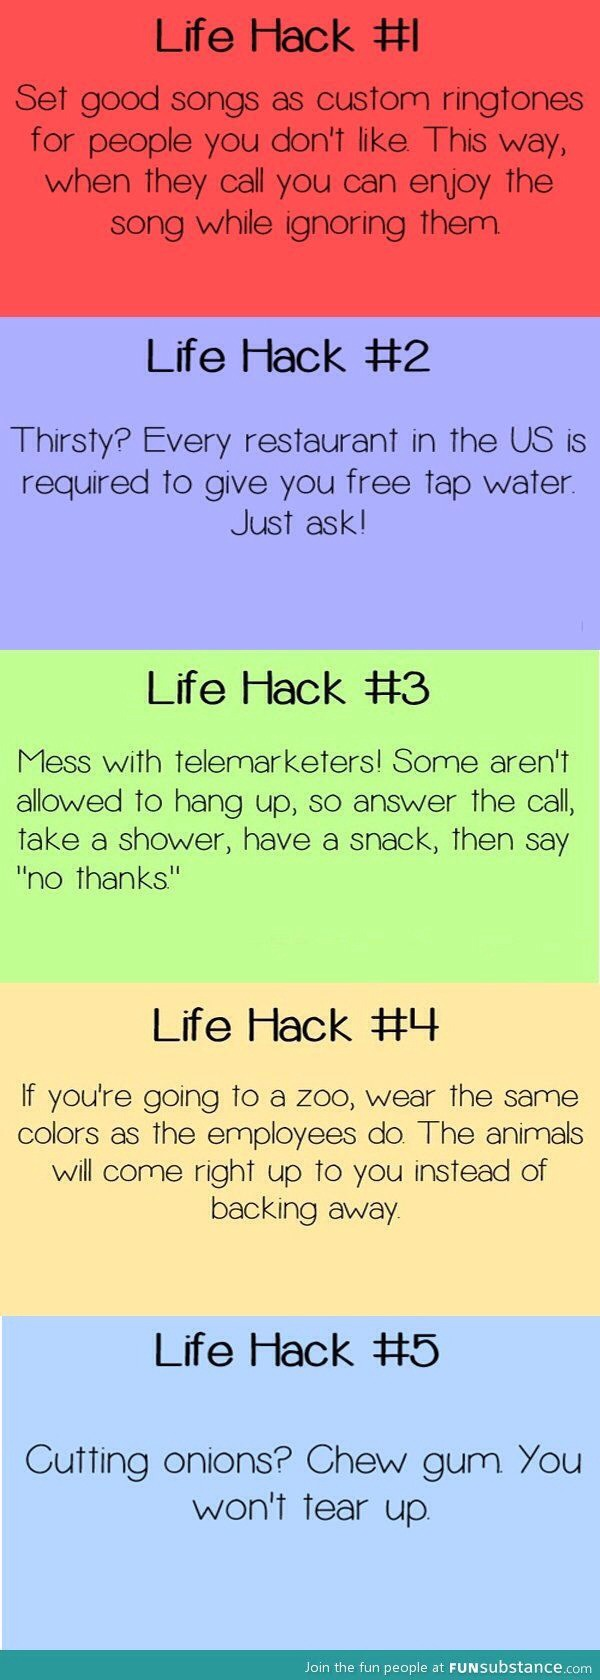 I love number 4, totally wanna do that! 😊👍